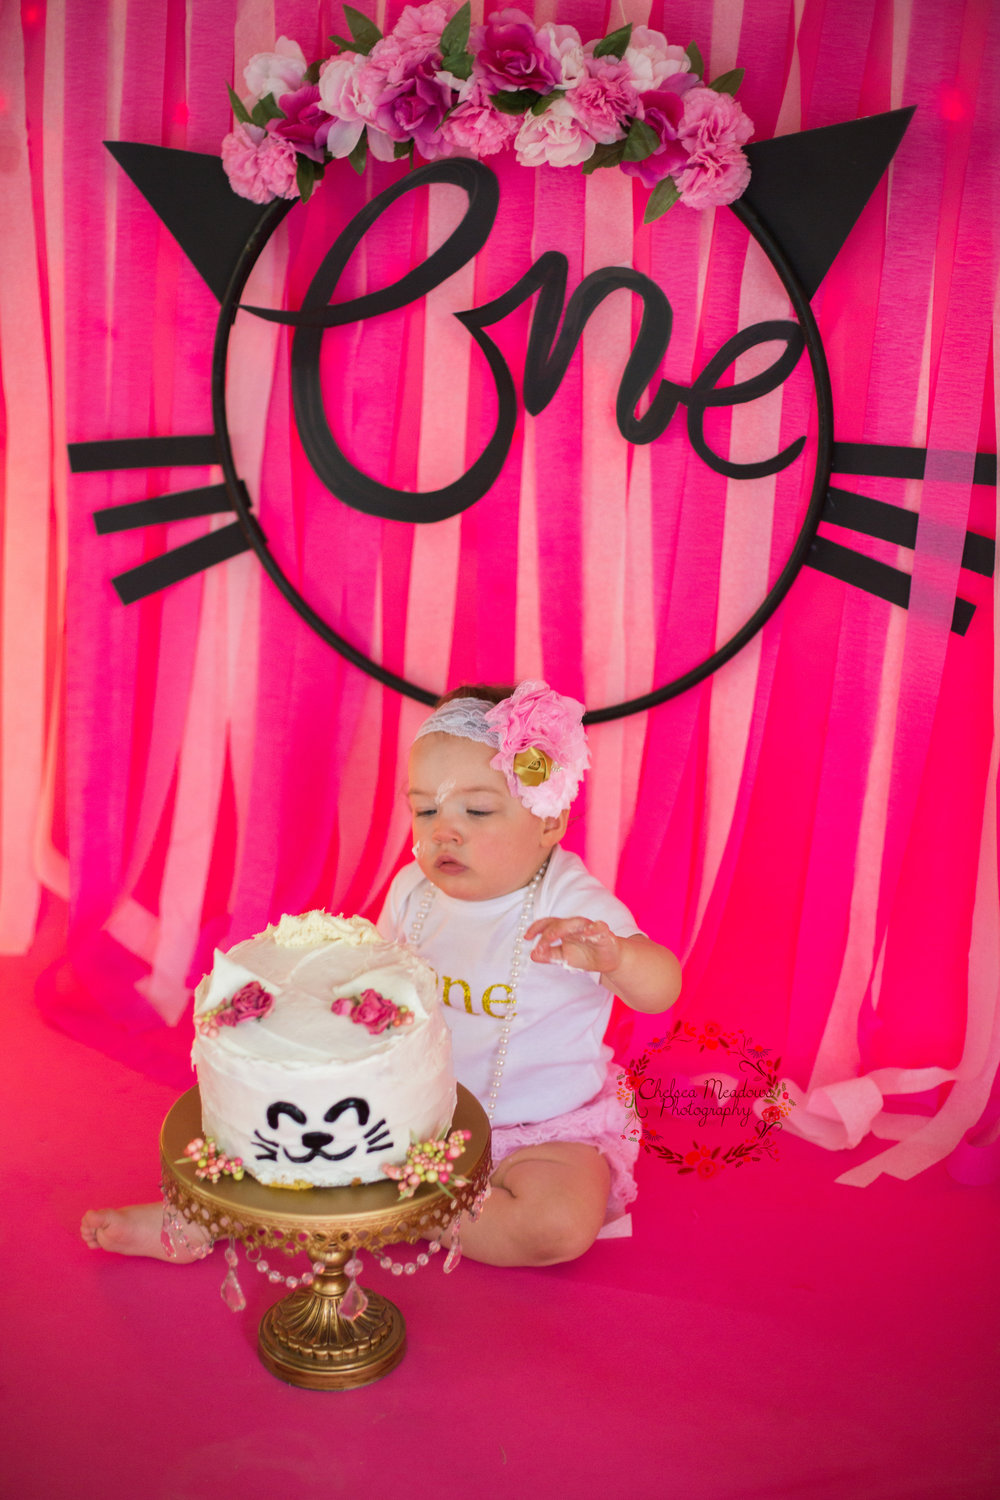 Phina First Birthday - Nashville Family Photographer - Chelsea Meadows Photography (81).jpg